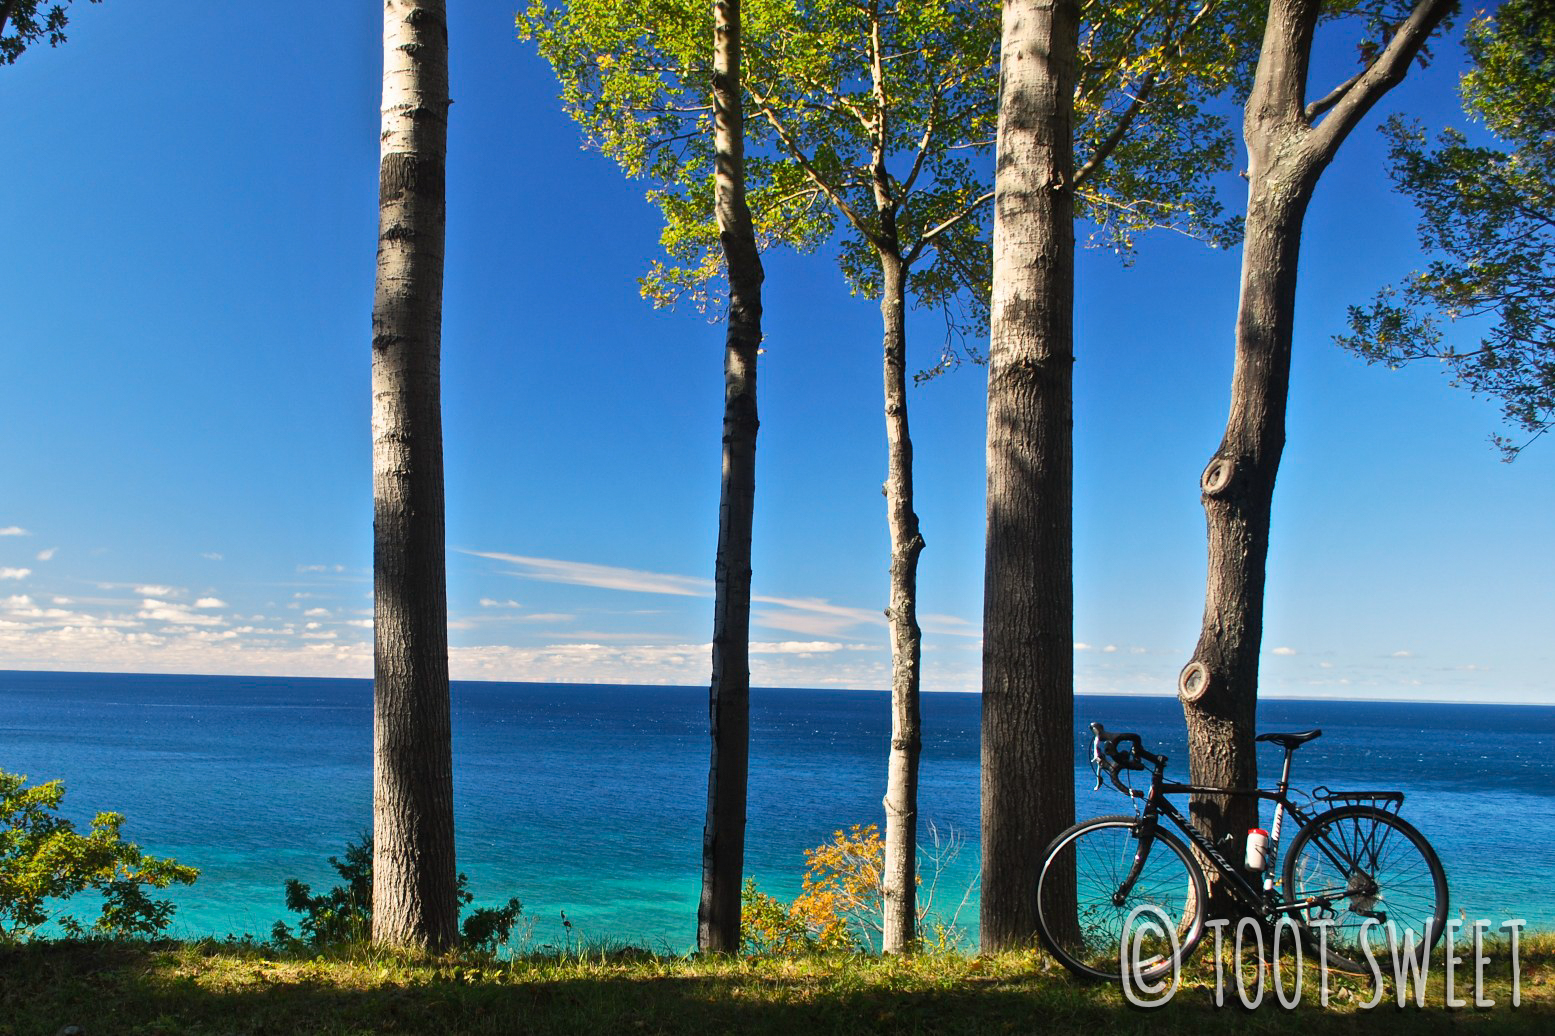 I sure am going to miss the crystal blue waters of Lake Michigan!